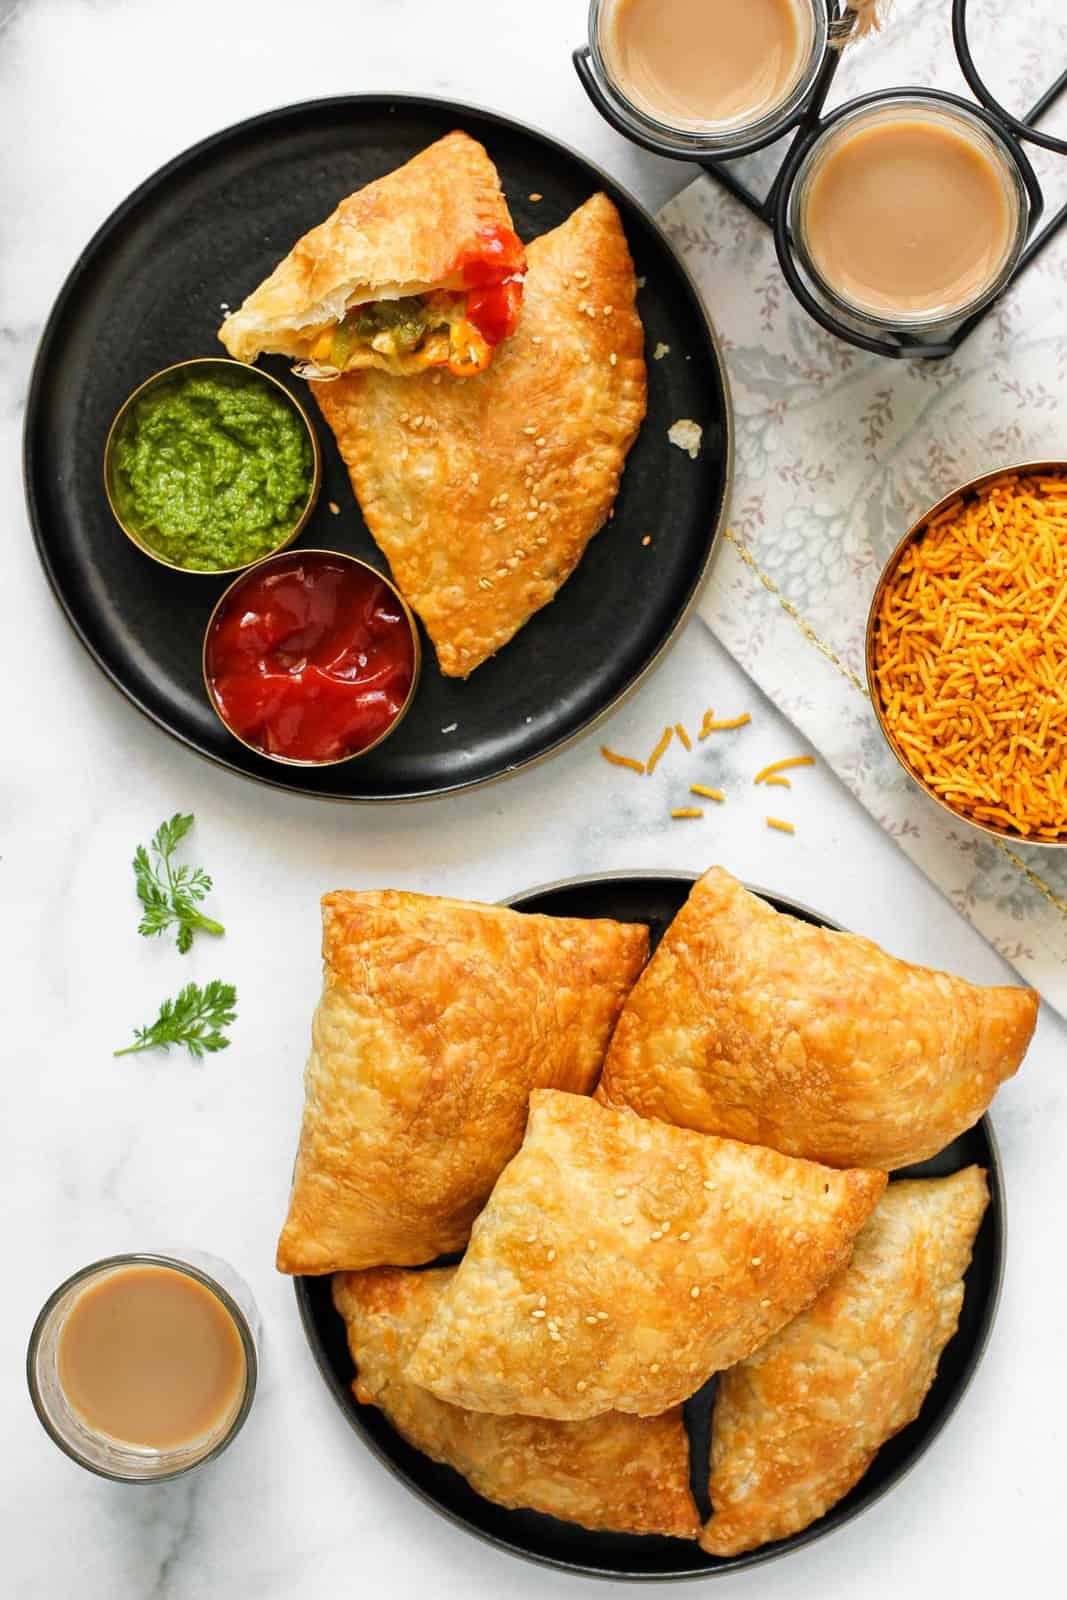 Jalapeno Cheese samosas in 2 plates served with chutney, ketchup and chai